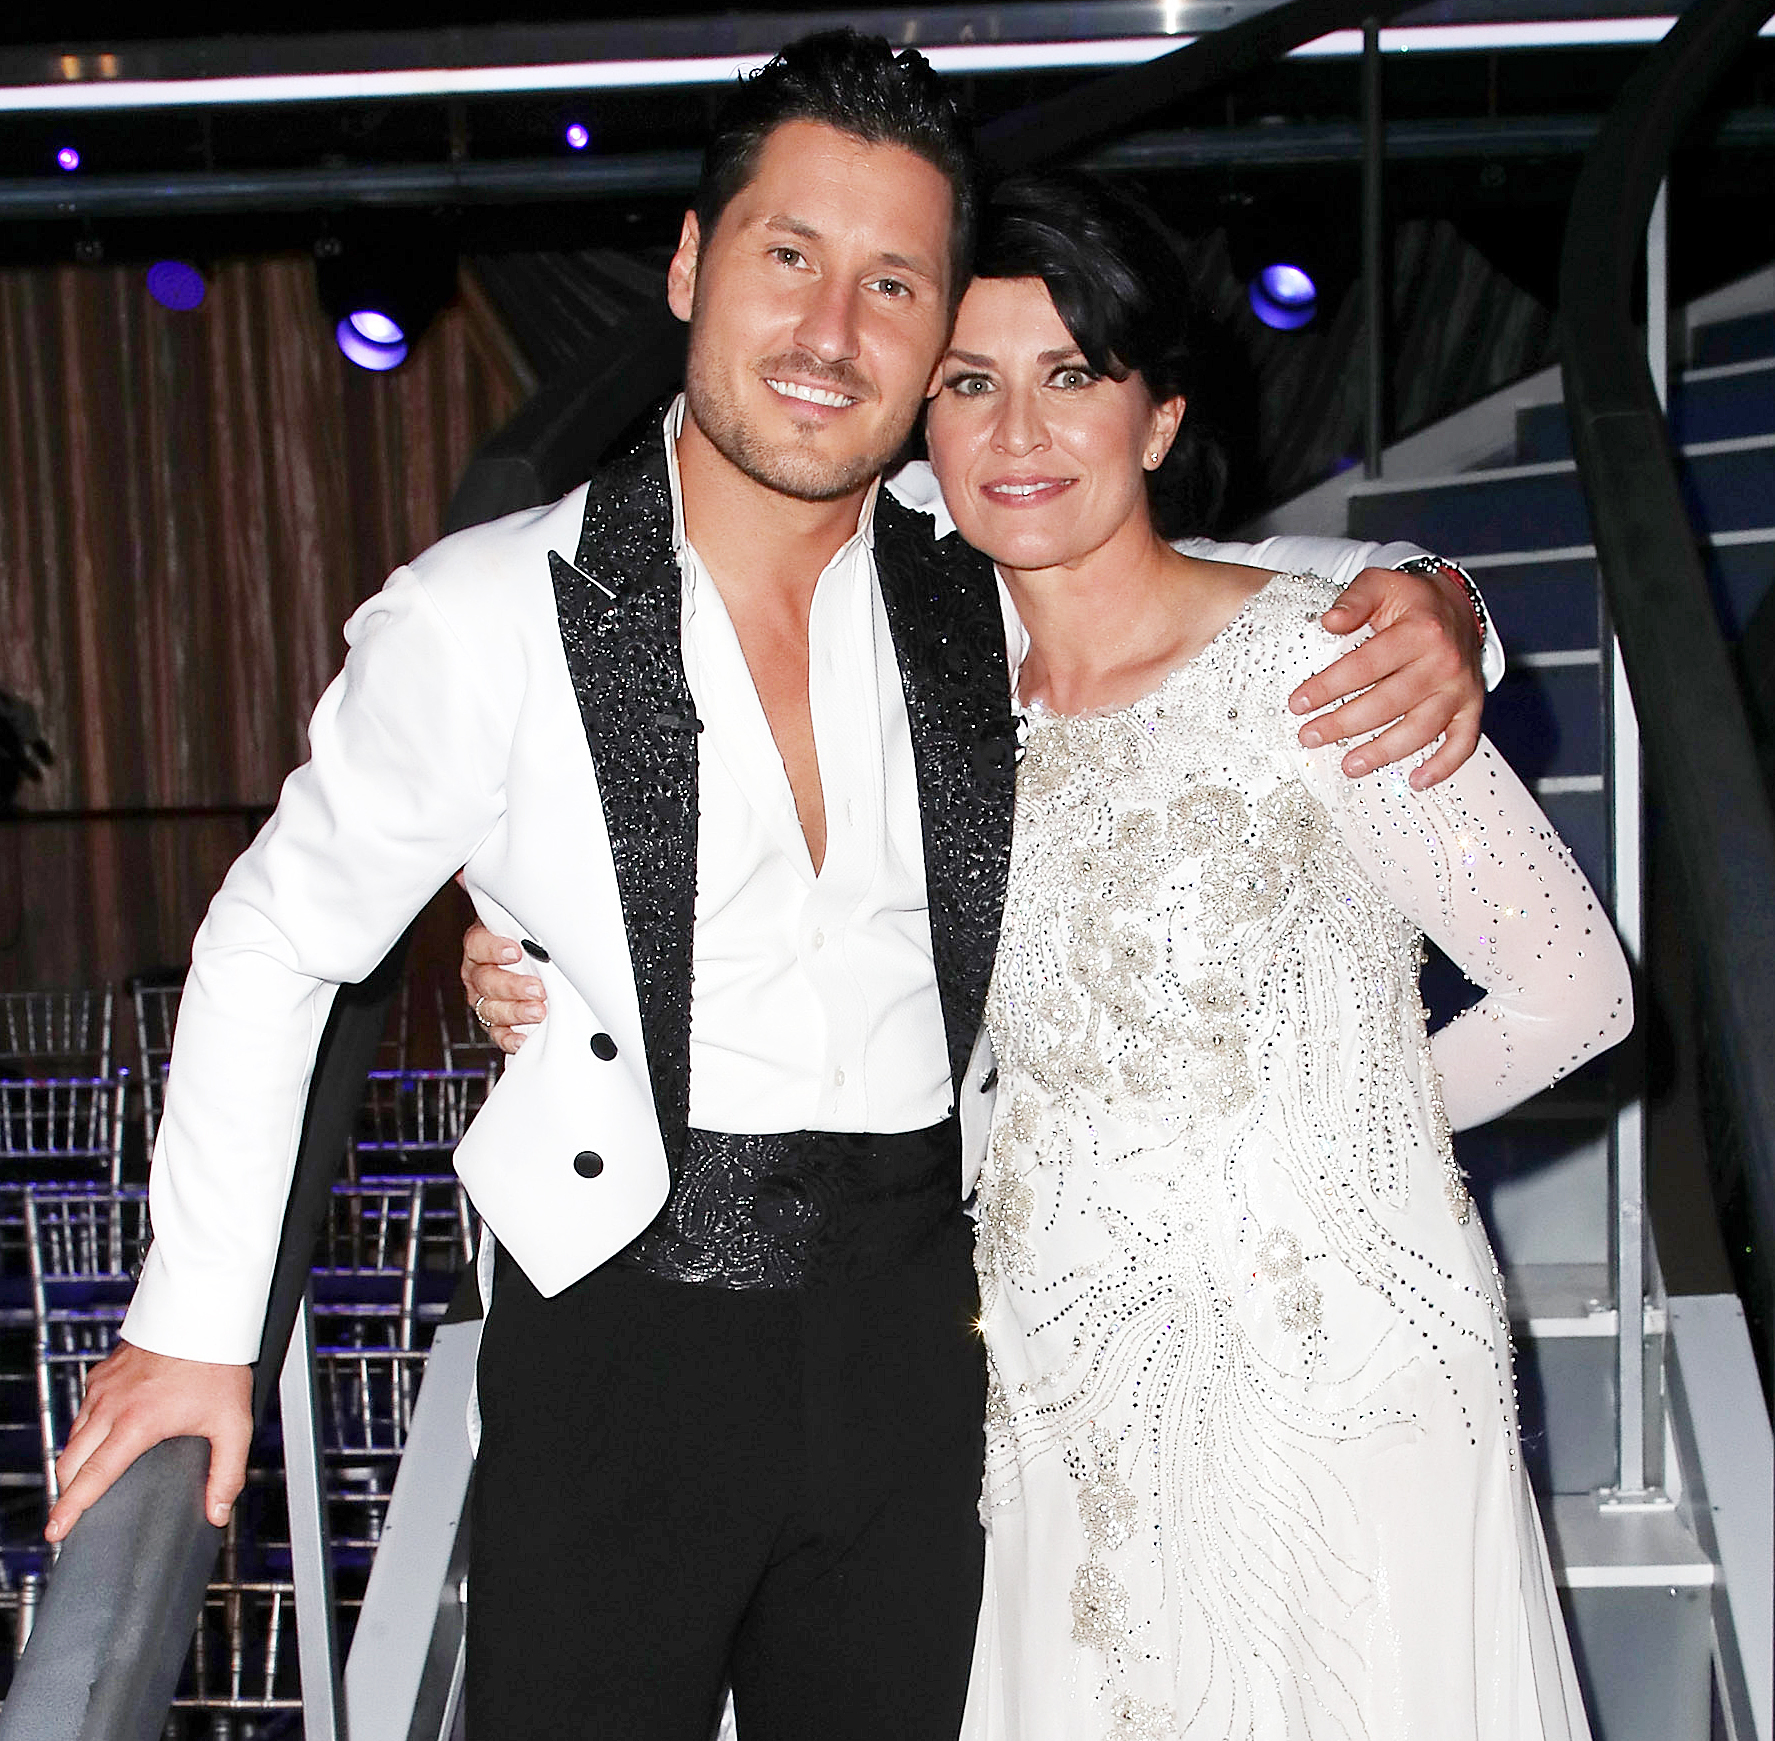 Val Chmerkovskiy Nancy McKeon Dancing with the Stars Season 27